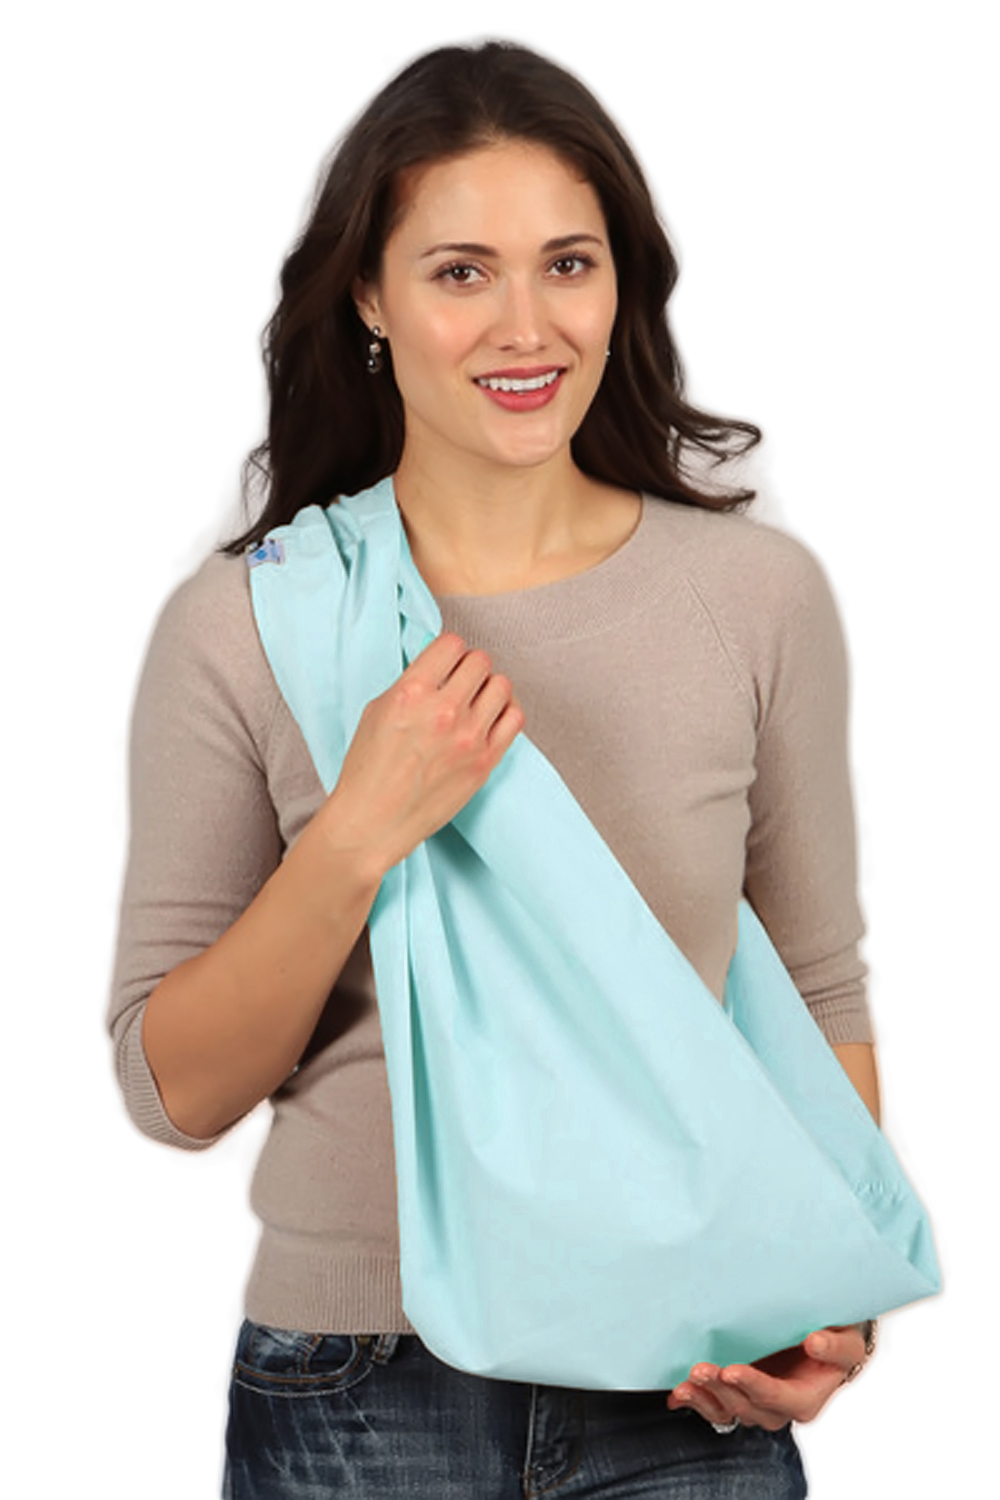 HugaMonkey Baby Sling Carrier for Newborn Babies, Infants and Toddlers - Aqua, Small